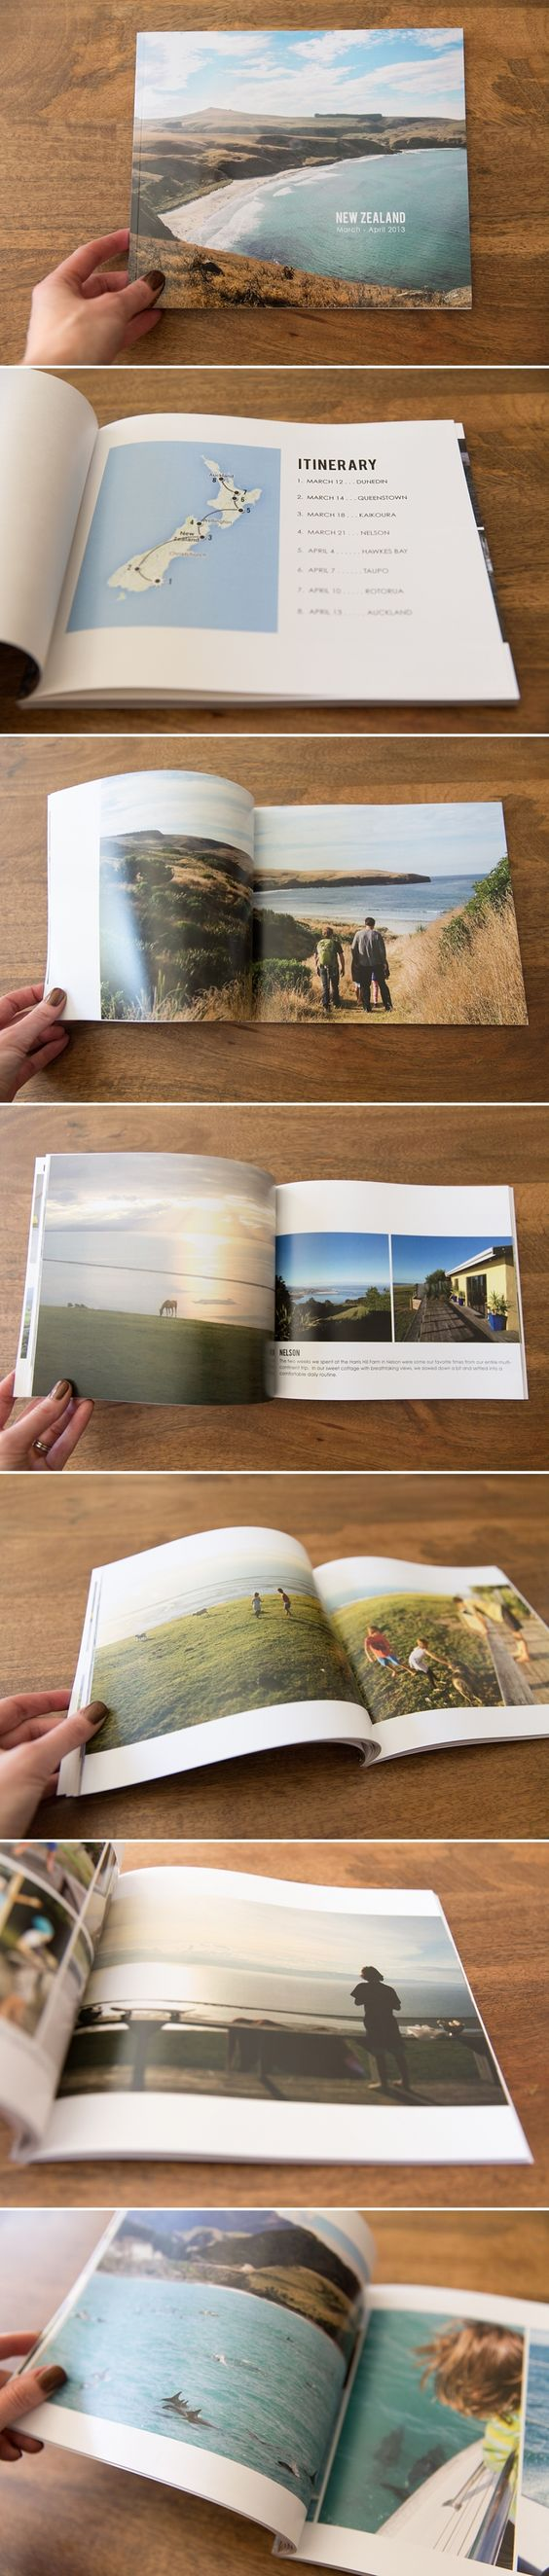 Photobook layout ideas - particularly the itinerary